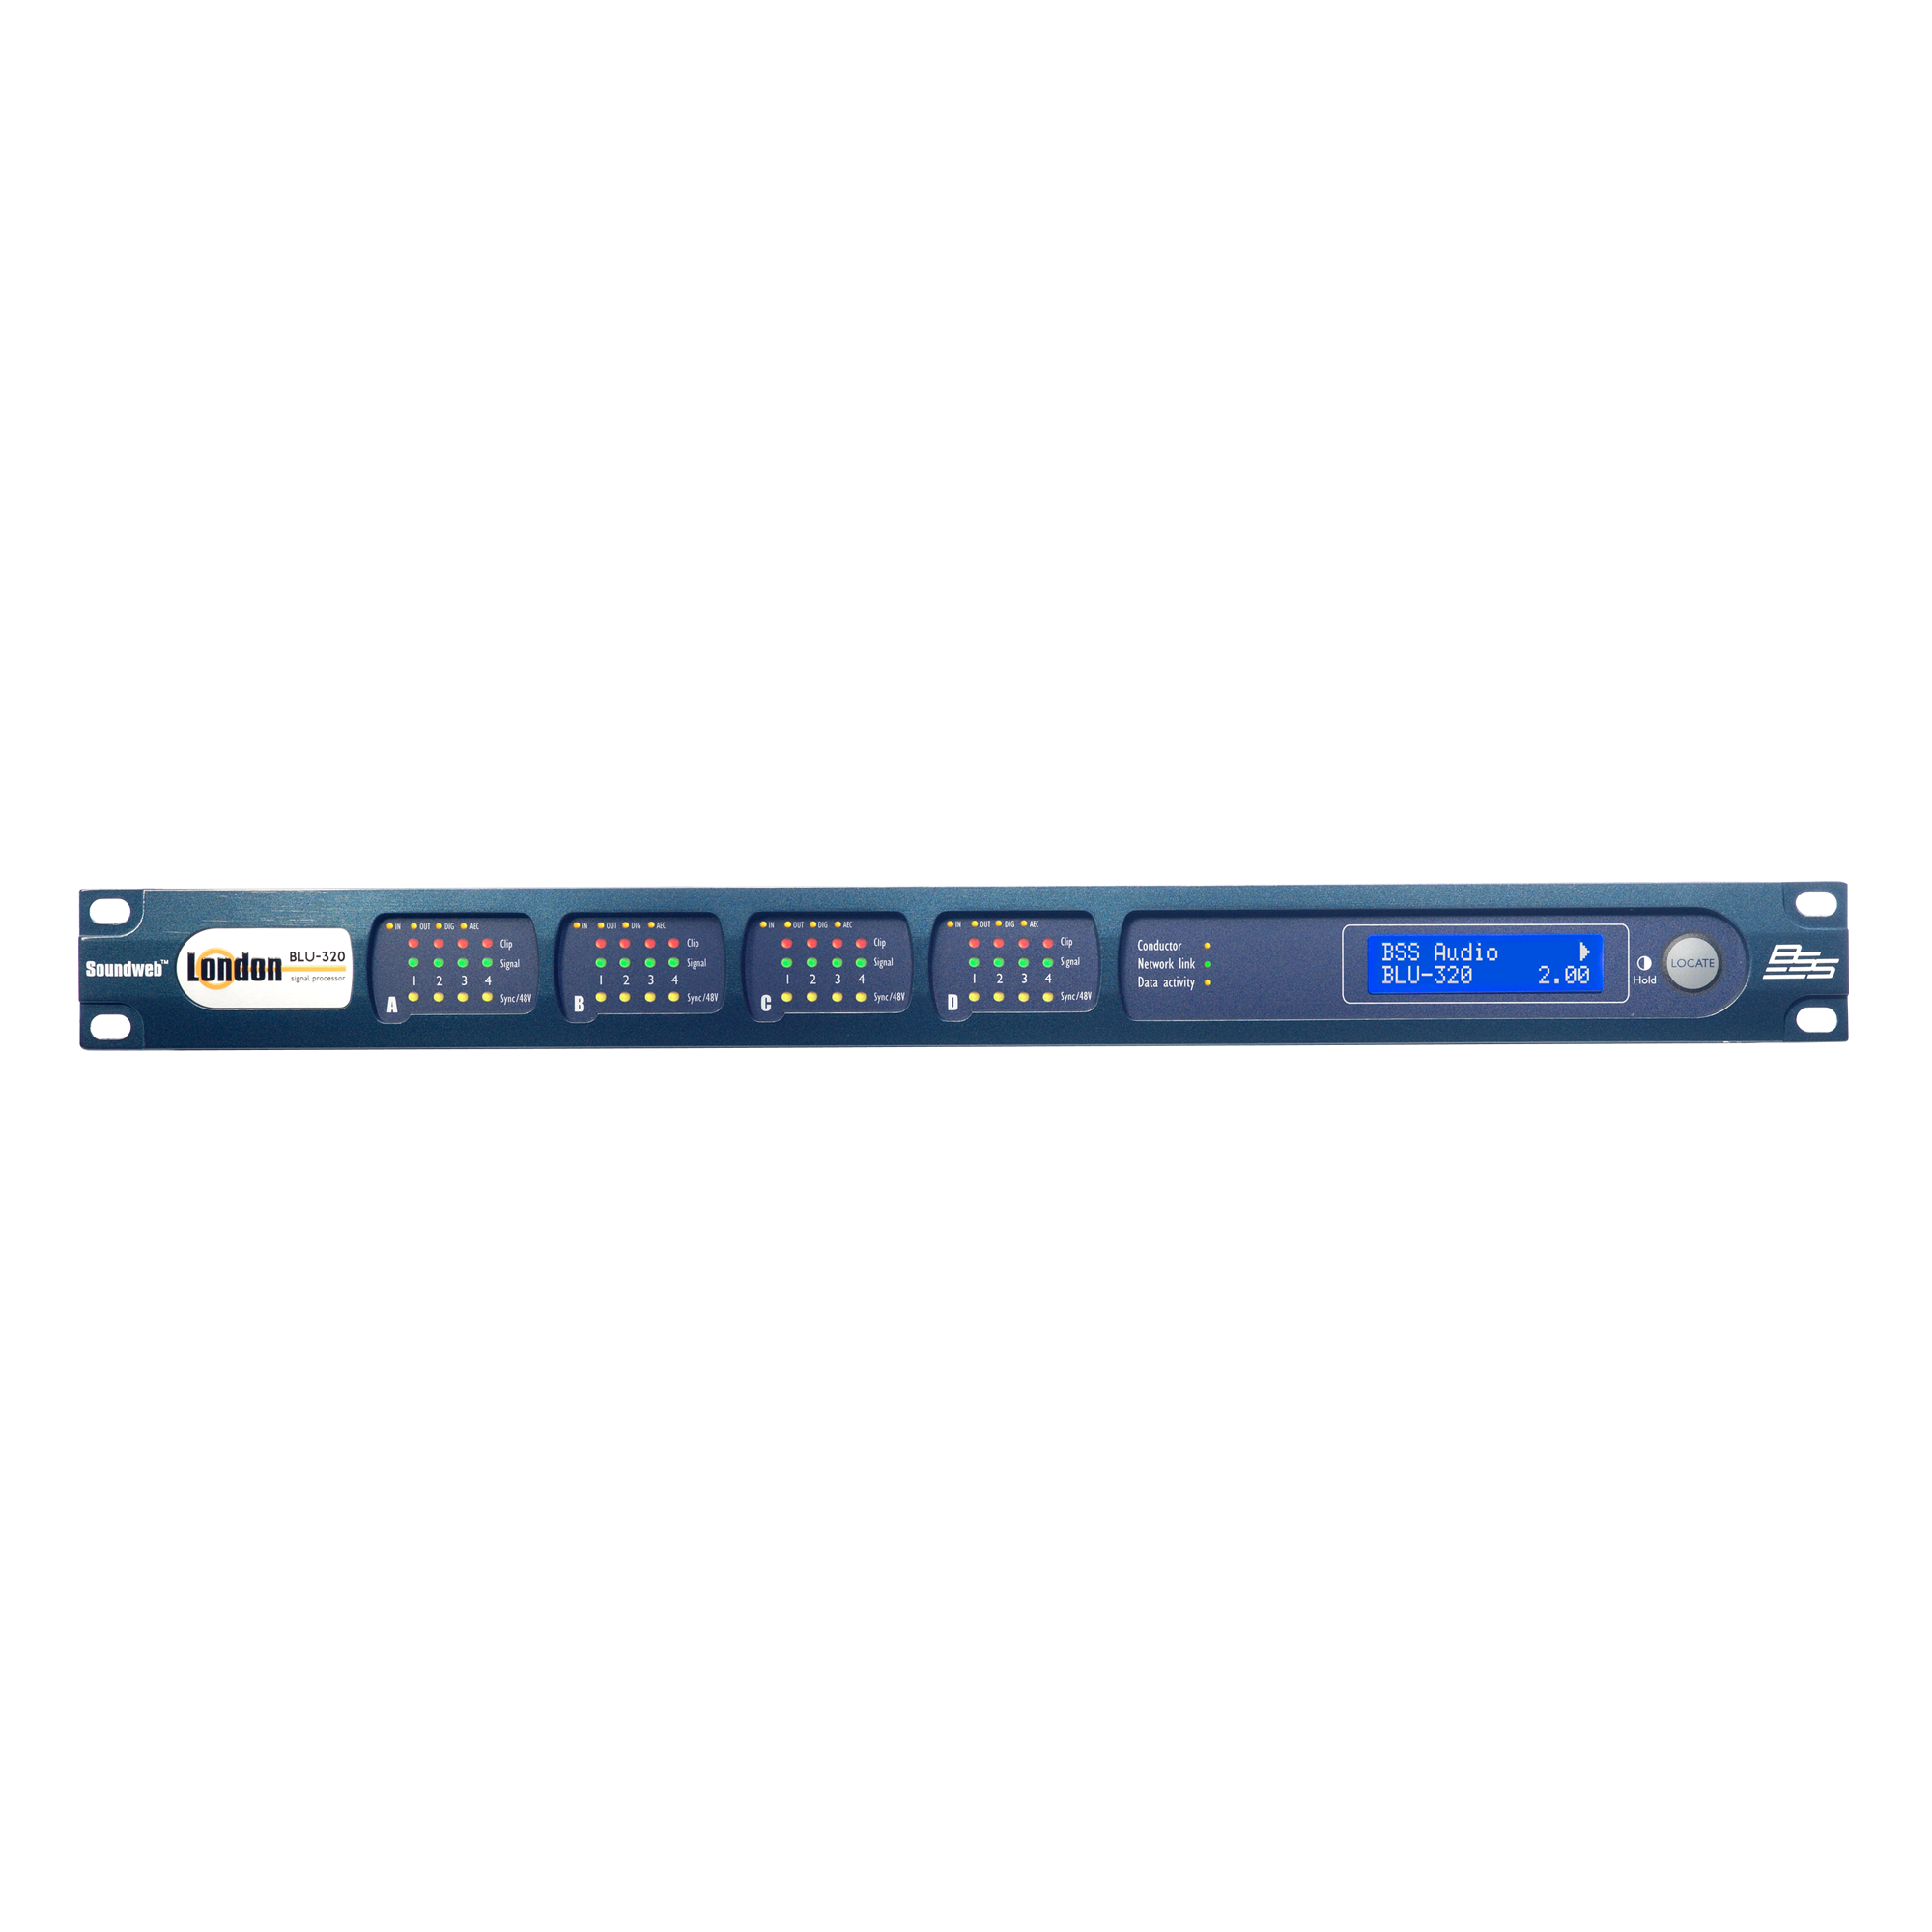 I/O Expander with BLU link and CobraNet™